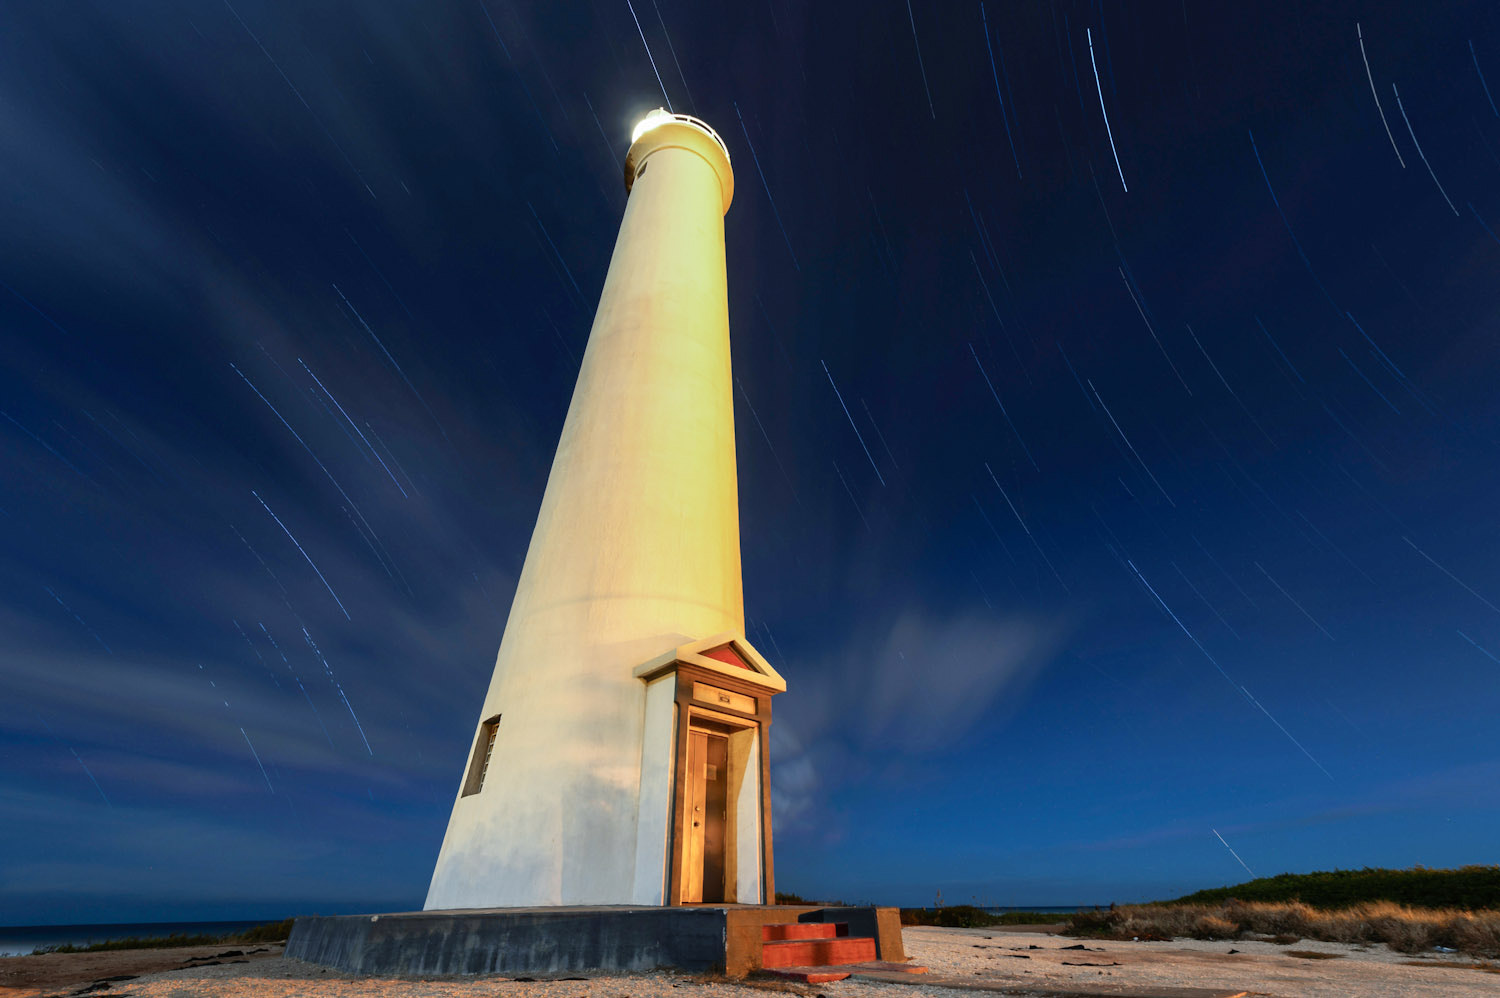 Photograph Barbers Point Star Trails by Marshall Humble on 500px